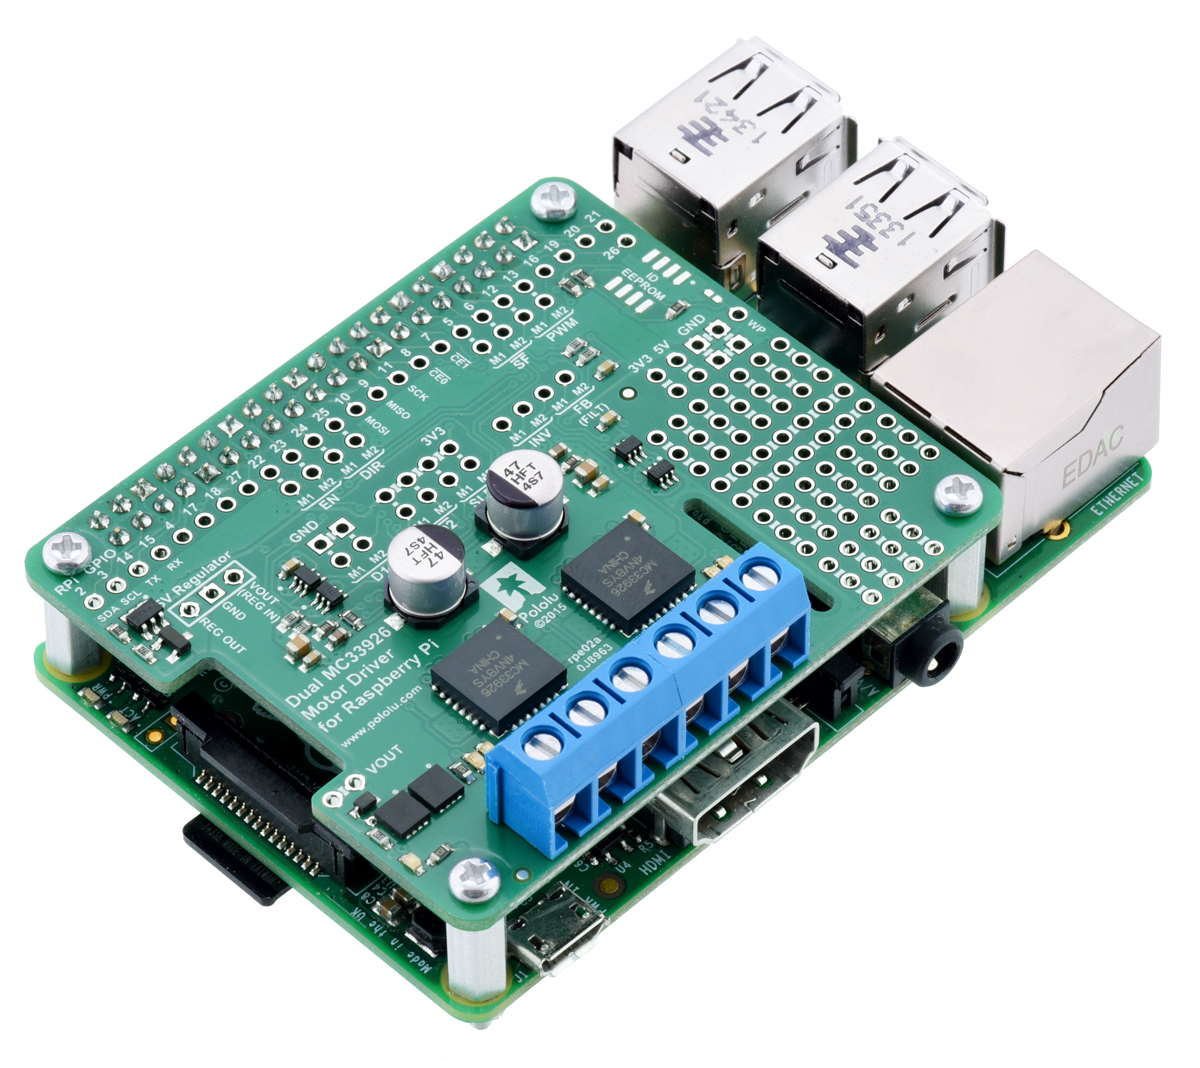 Pololu Dual Mc33926 Motor Driver For Raspberry Pi Partial Kit Is A Circuit To Control Speed Uses Pulse Width Modulation Pwm The Board Matches Hat Hardware Attached On Top Mechanical Specification Although It Does Not Conform Full Specifications Due